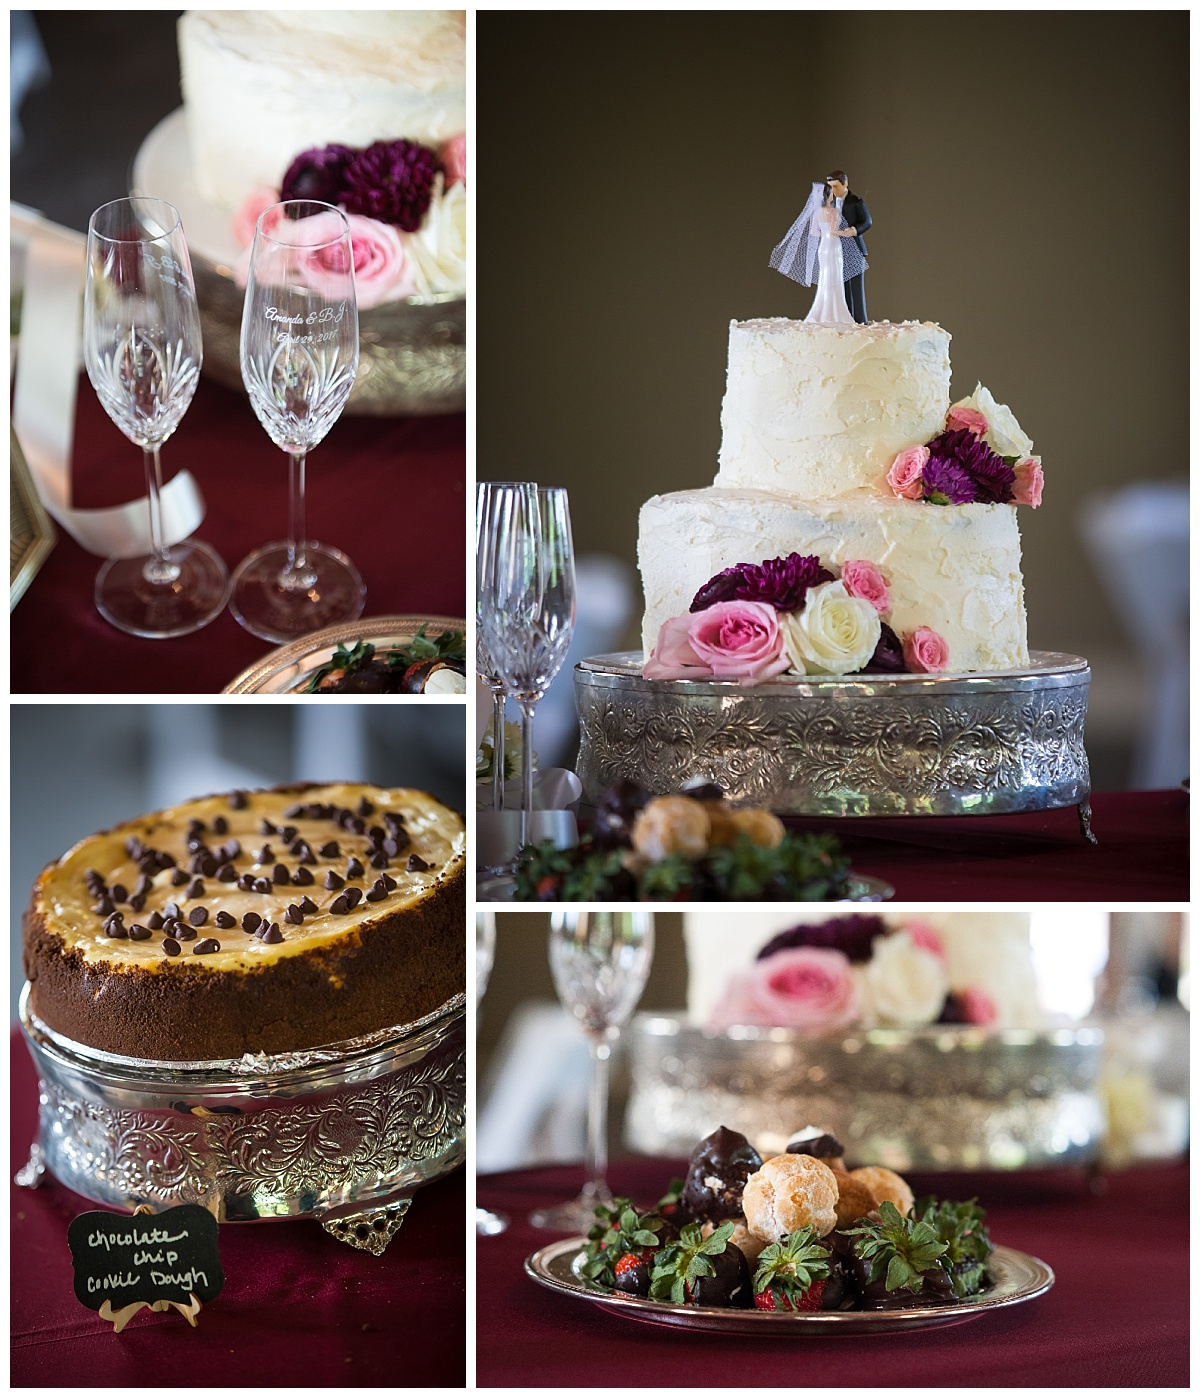 Wedding cake and cheesecake desert bar